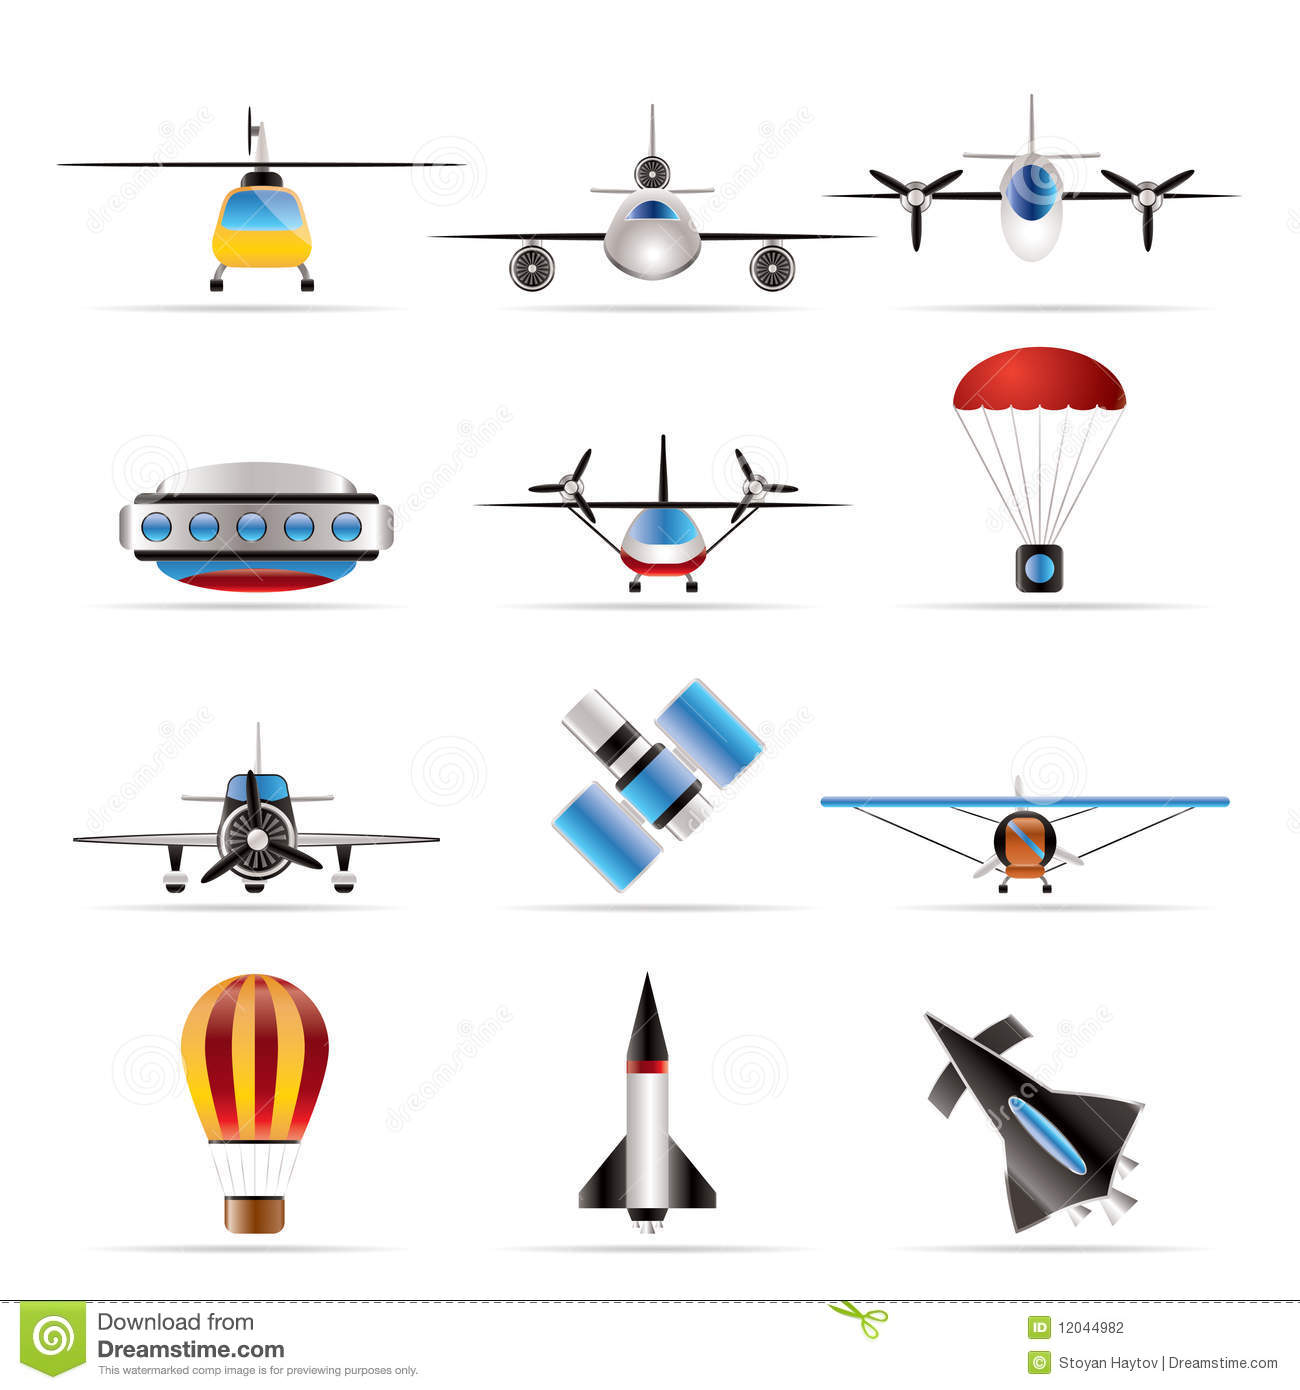 prices of helicopters with Stock Photography Different Types Aircraft Illustrations Image12044982 on F 4J 1 32 1 moreover Photos besides Stock Illustration Hospital Icon Set Web Symbol Design Illustrator Image45872223 also 22 in addition Stock Photos Plastic Toy Helicopter Image19795713.